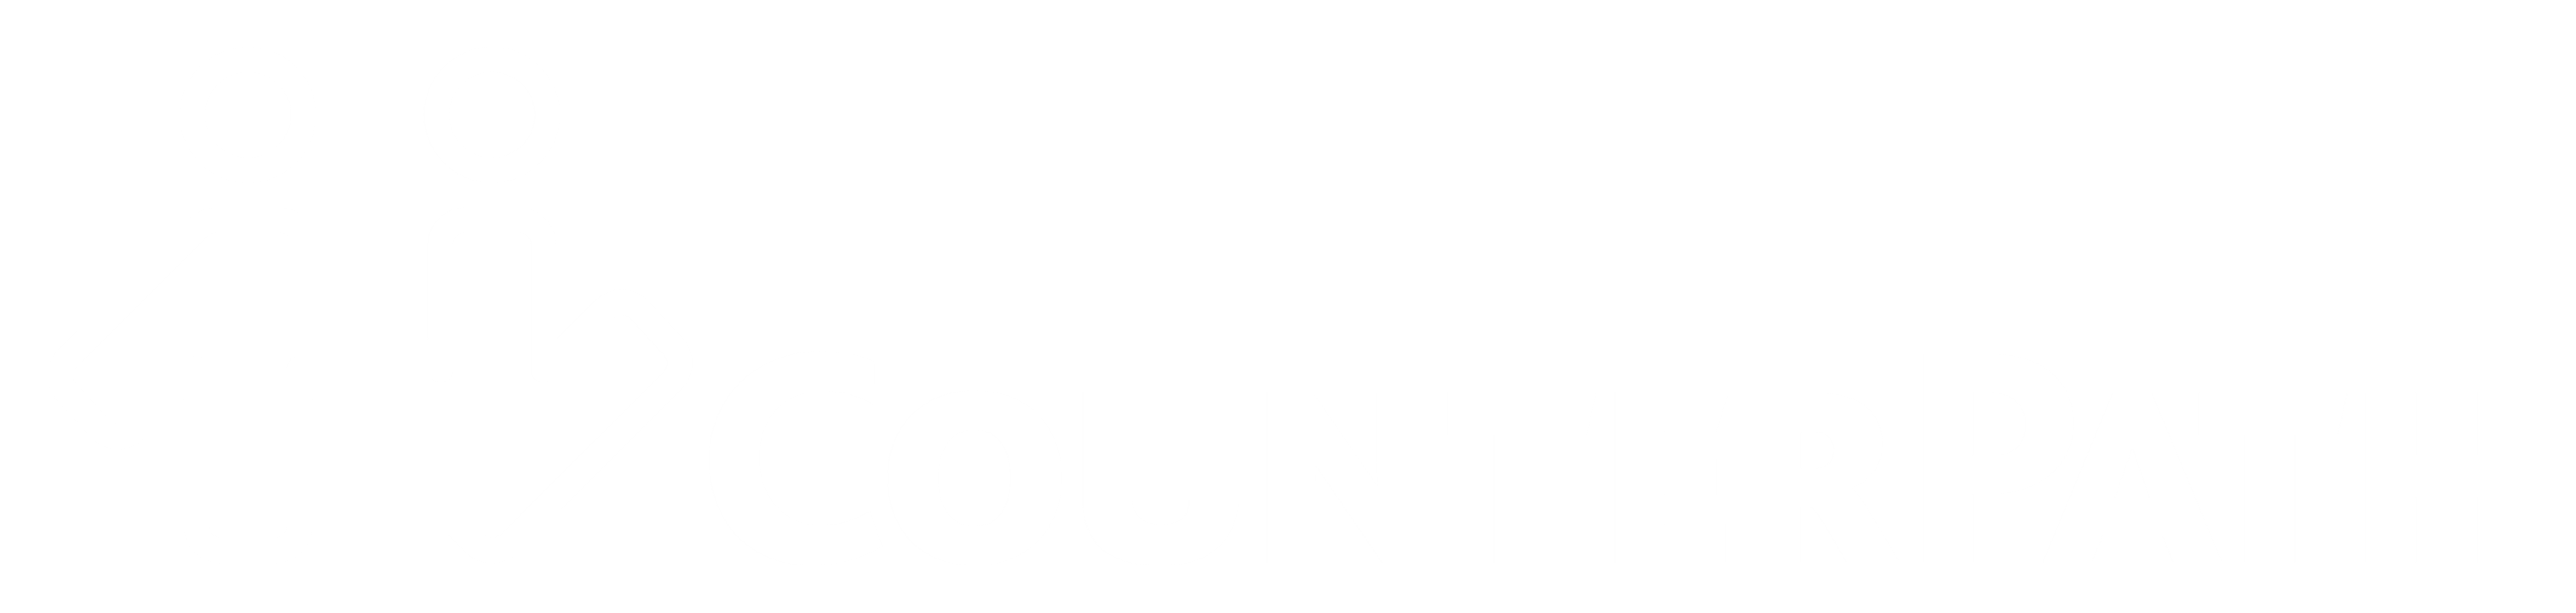 counterpath-logo-for-black-background